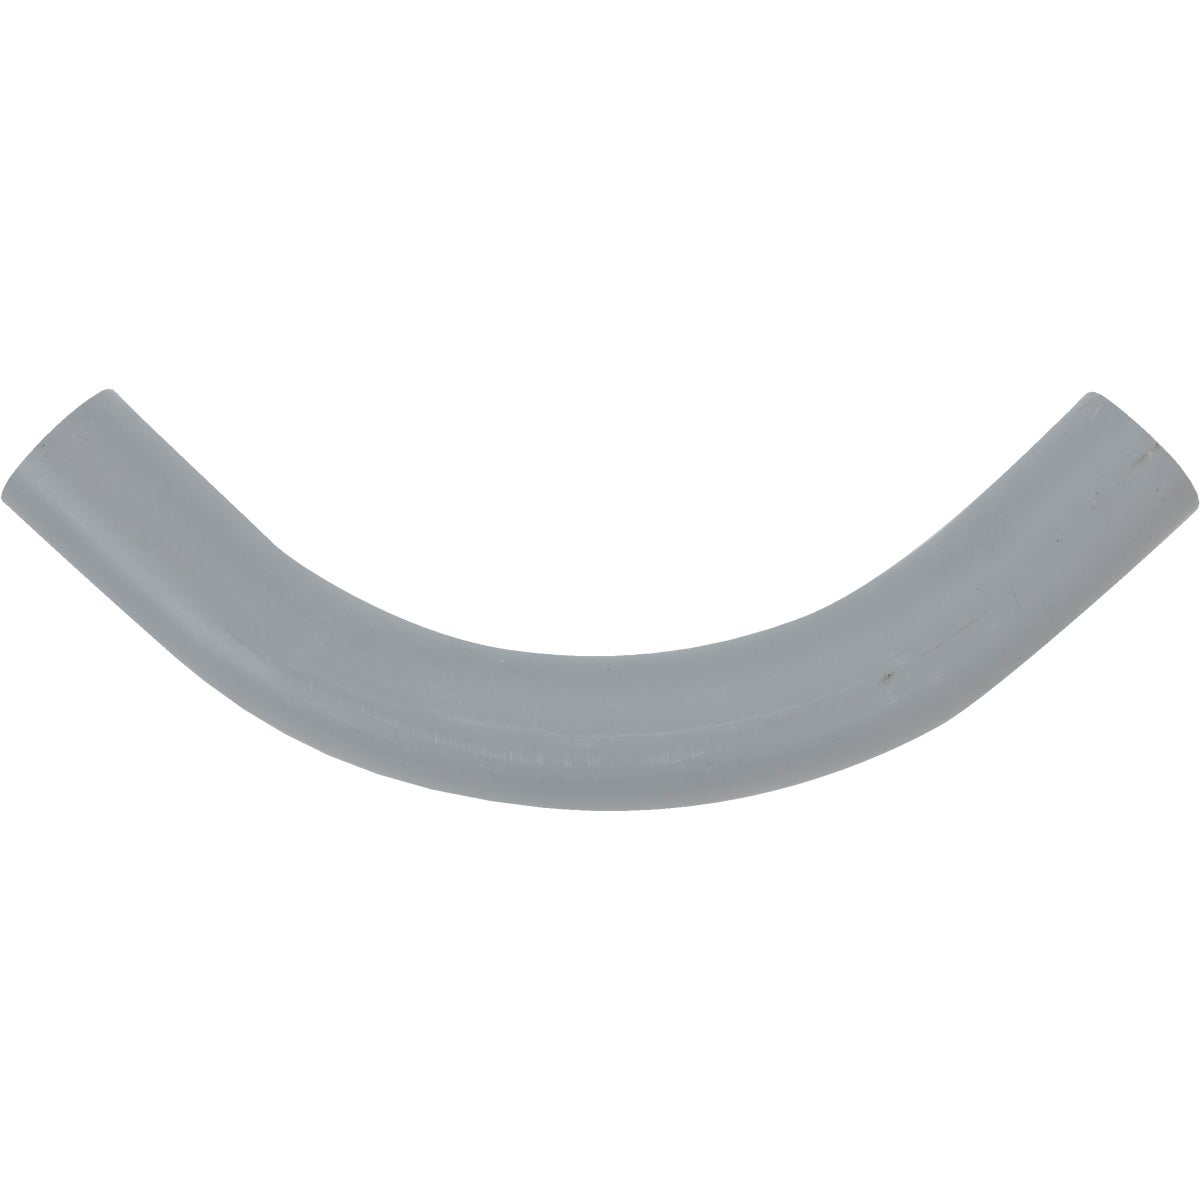 "2"" PVC ELBOW - UA9AJCAR by Thomas & Betts"